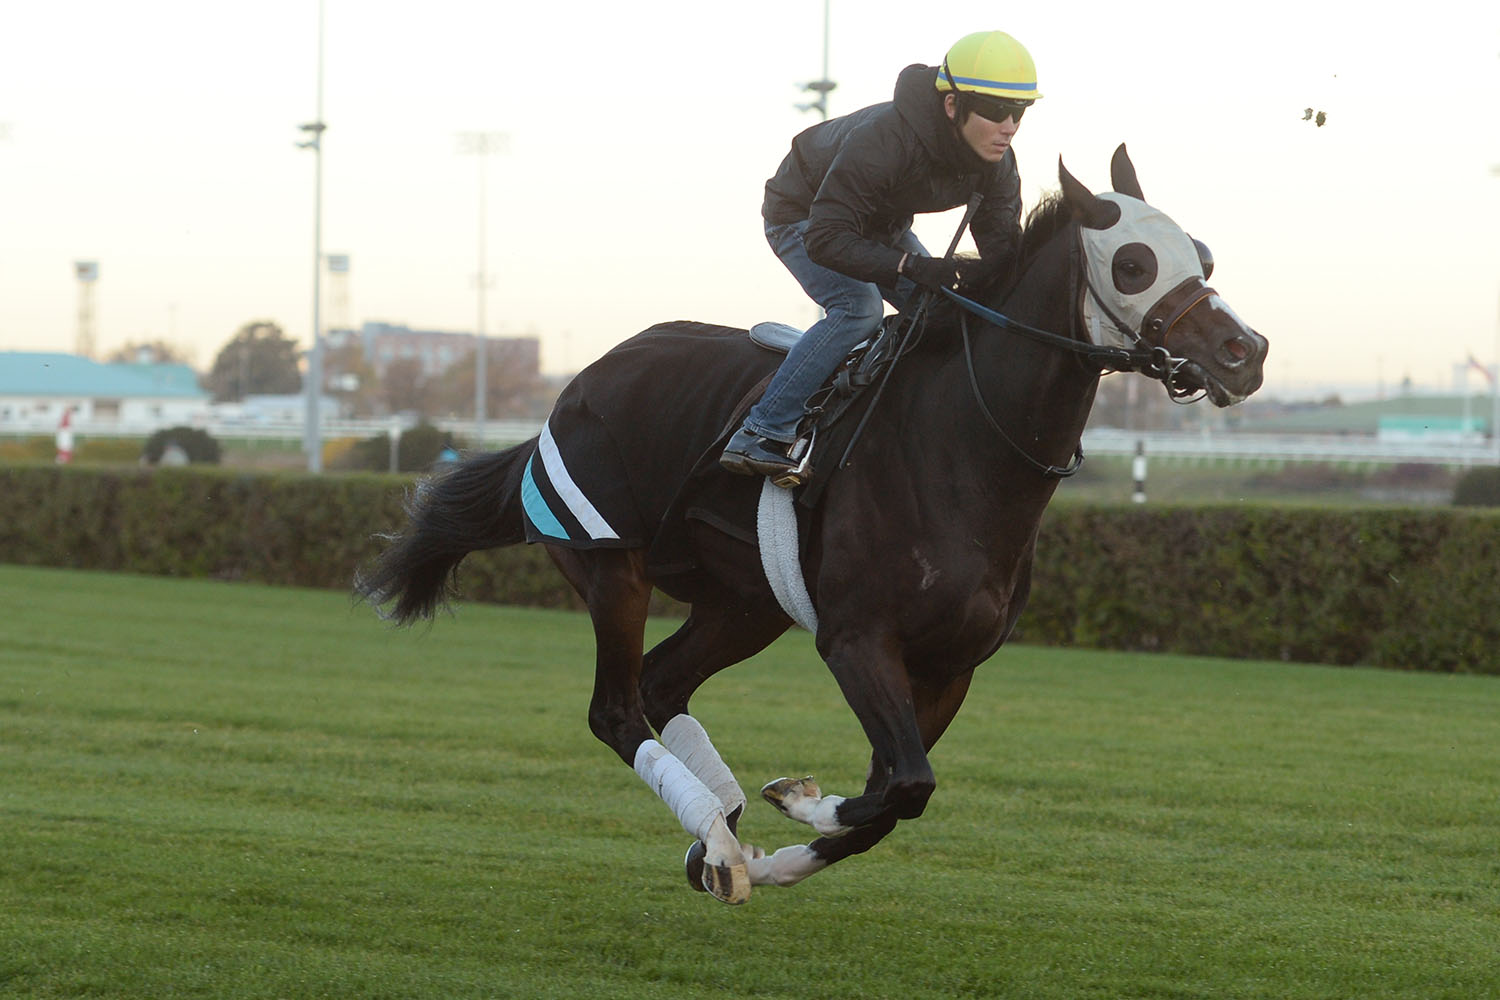 Mighty Heart preparing for the Breeders' Stakes under Daisuke Fukumoto, at Woodbine Racetrack. (Michael Burns Photo)